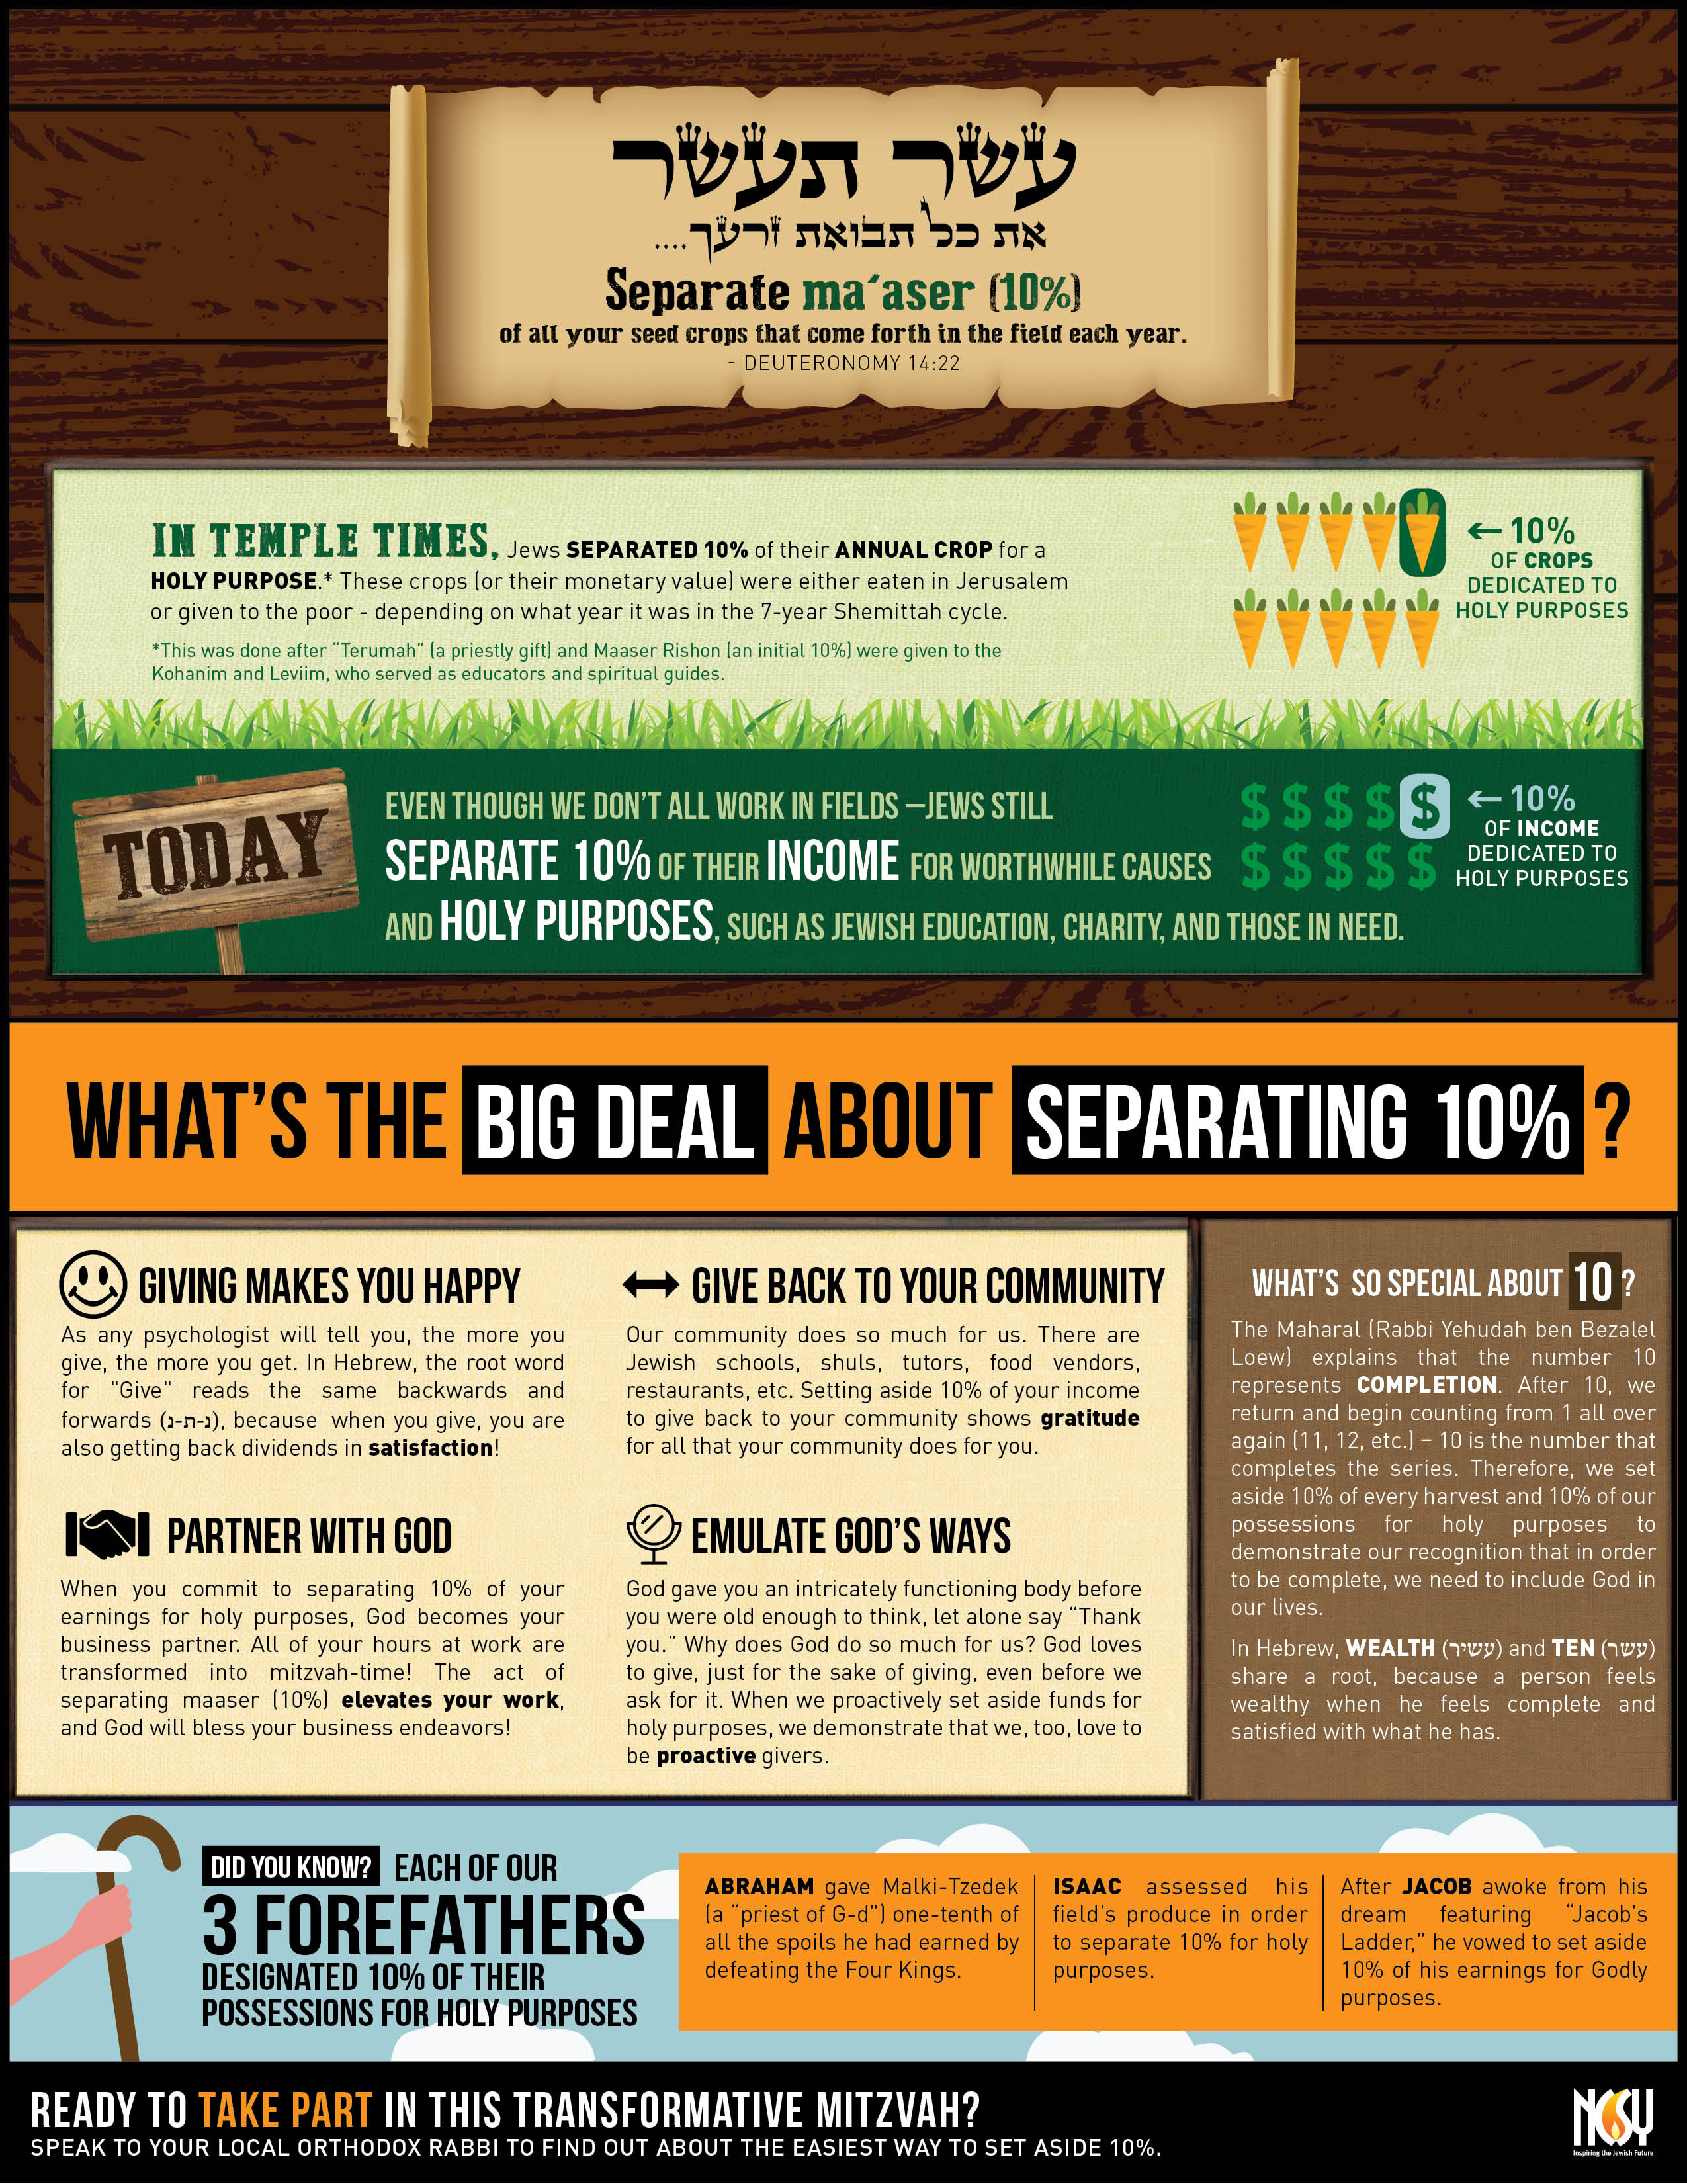 what to do before separating